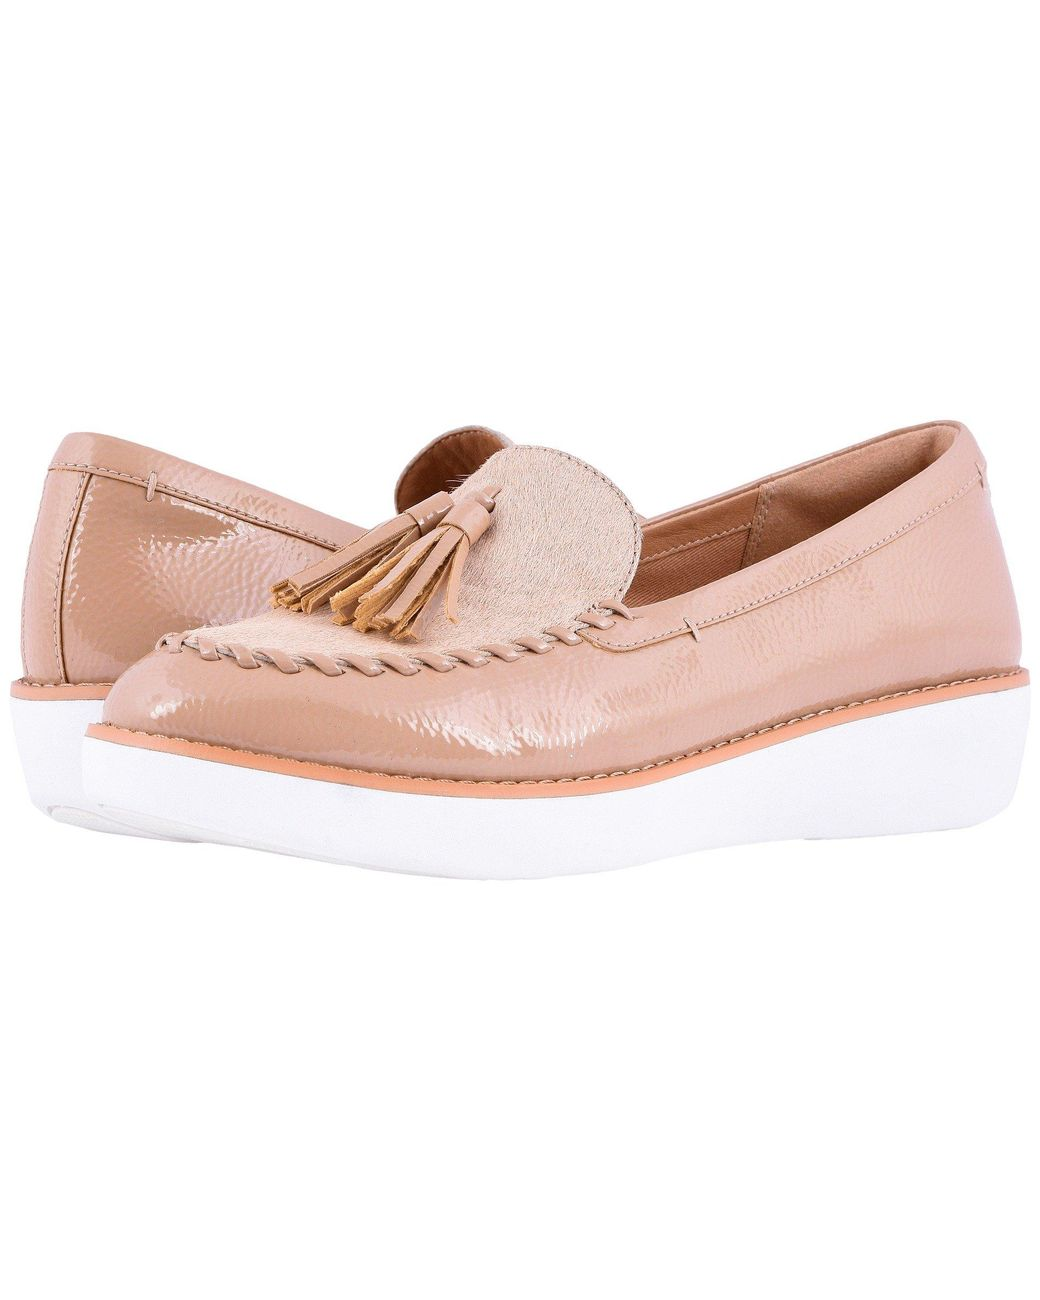 e225aaac5ea Lyst - Fitflop Petrina Faux Pony Moccasin in Pink - Save 21%